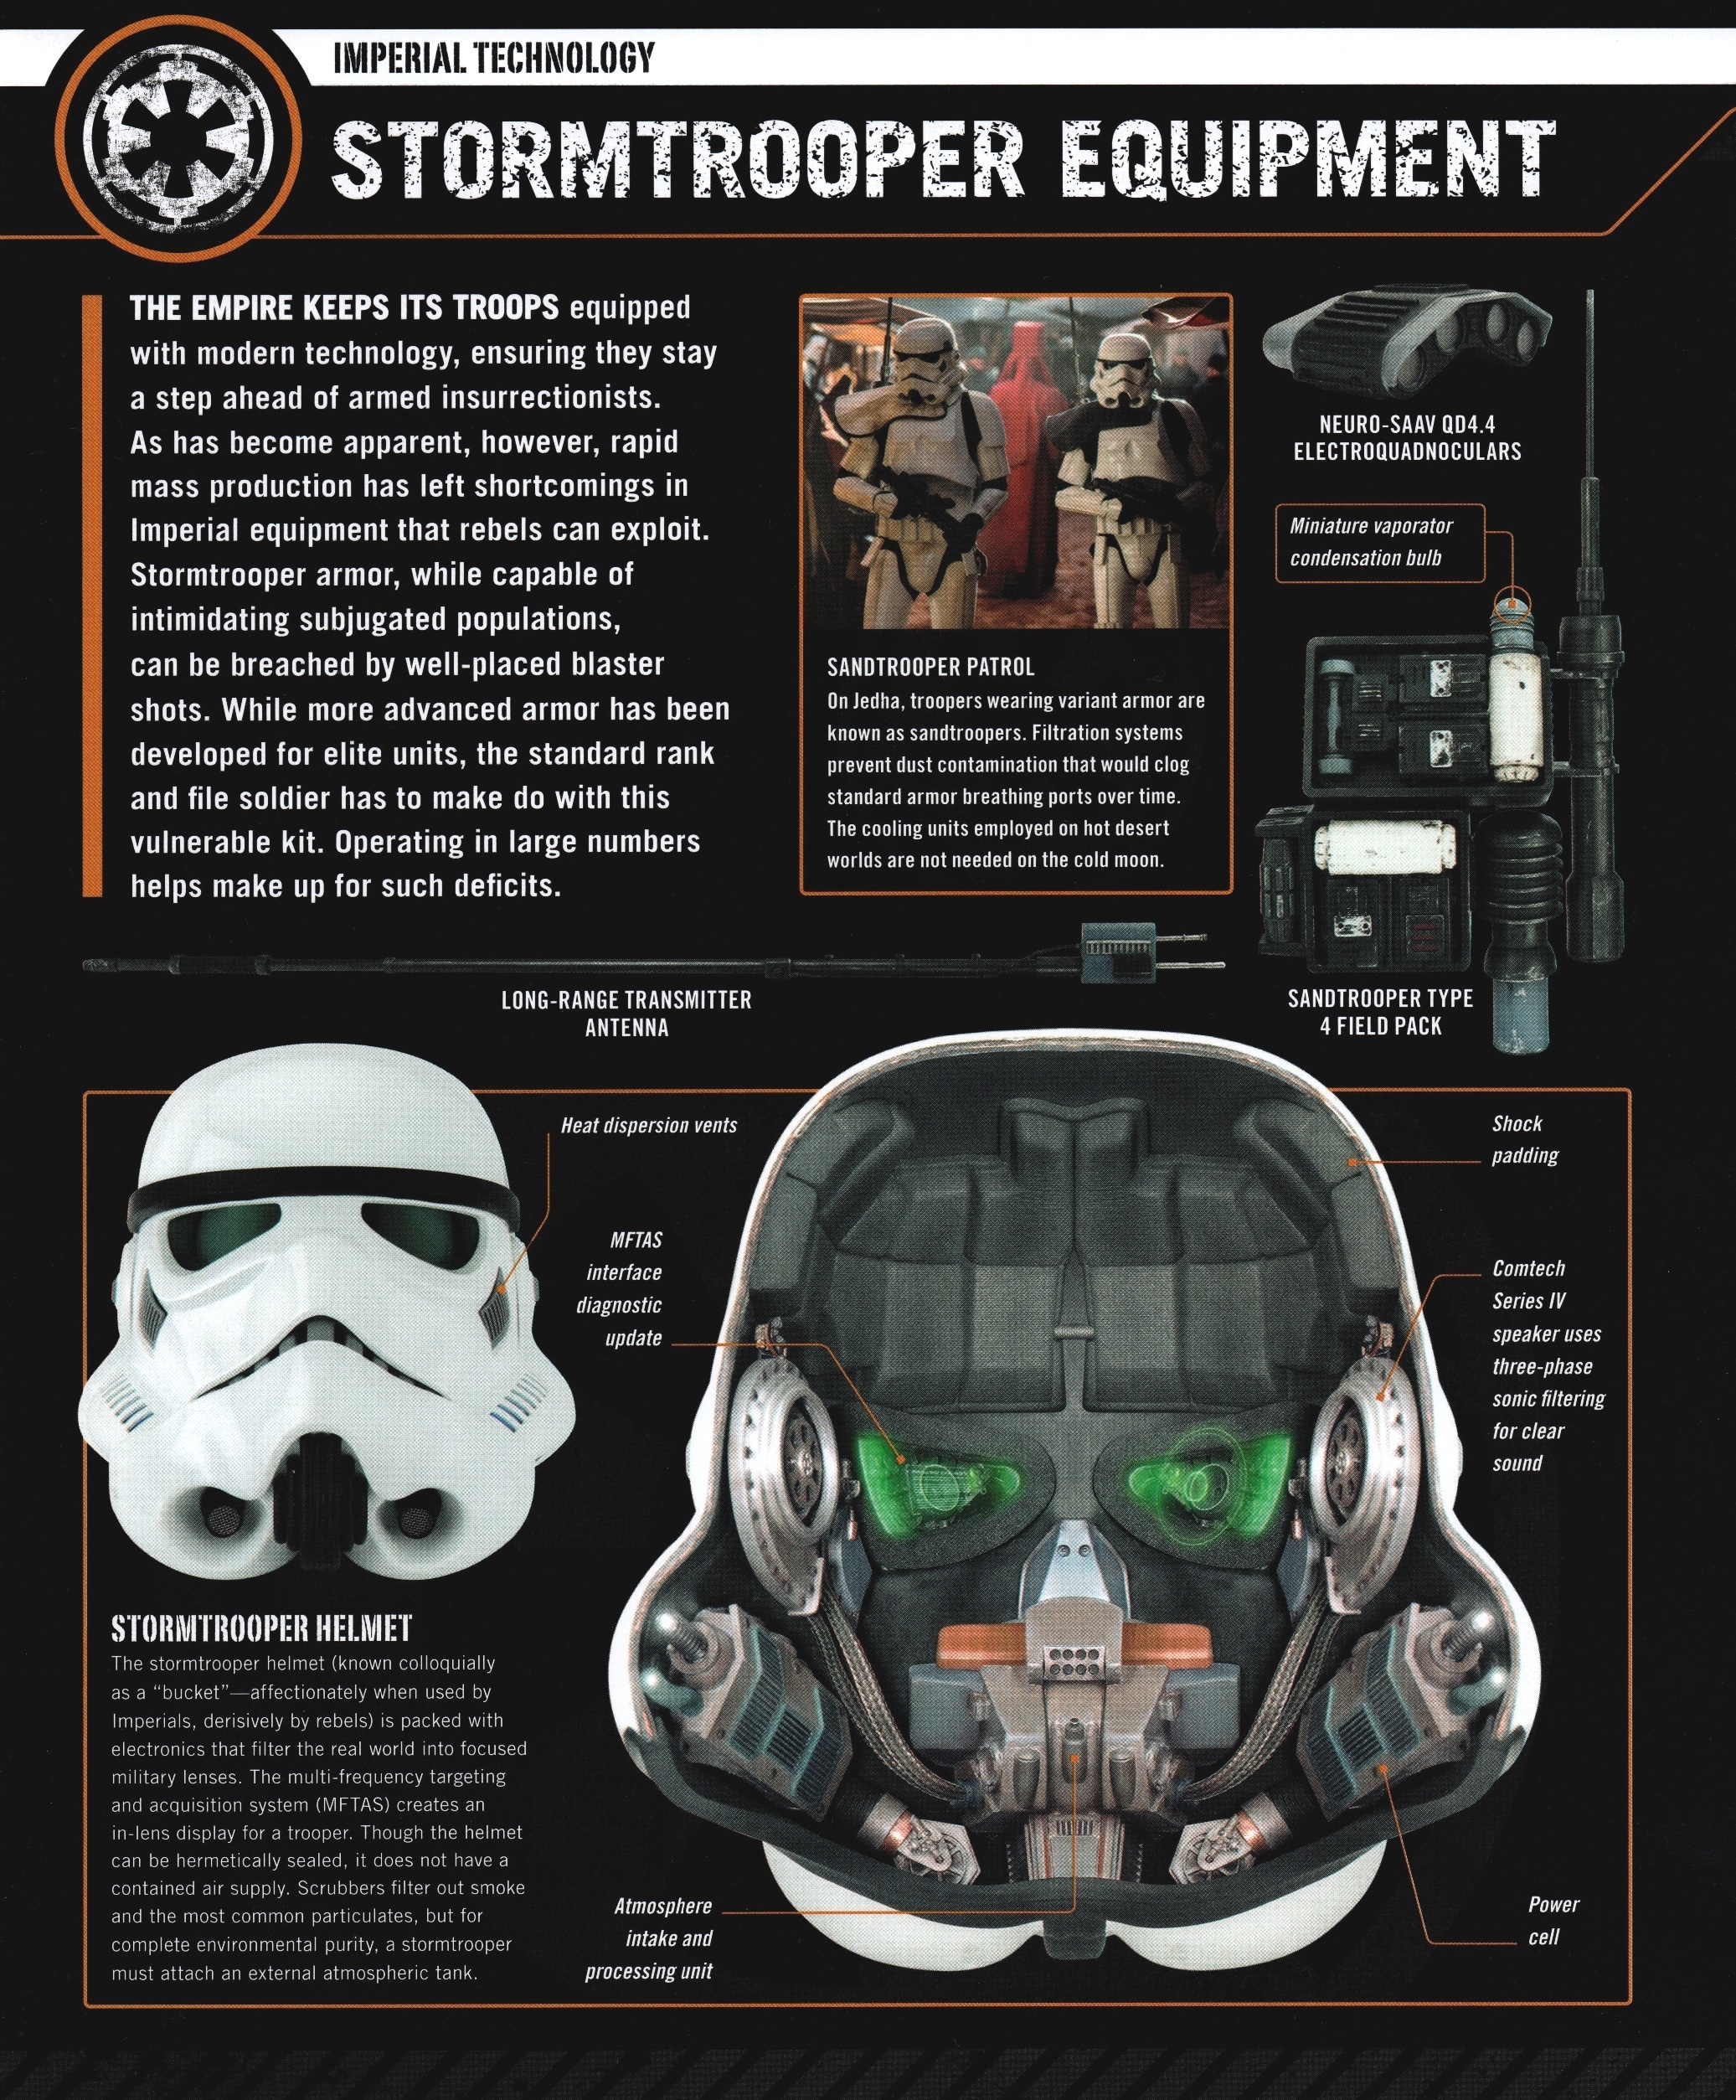 Rogue One Ultimate Visual Guide (b0bafett_Empire) p134